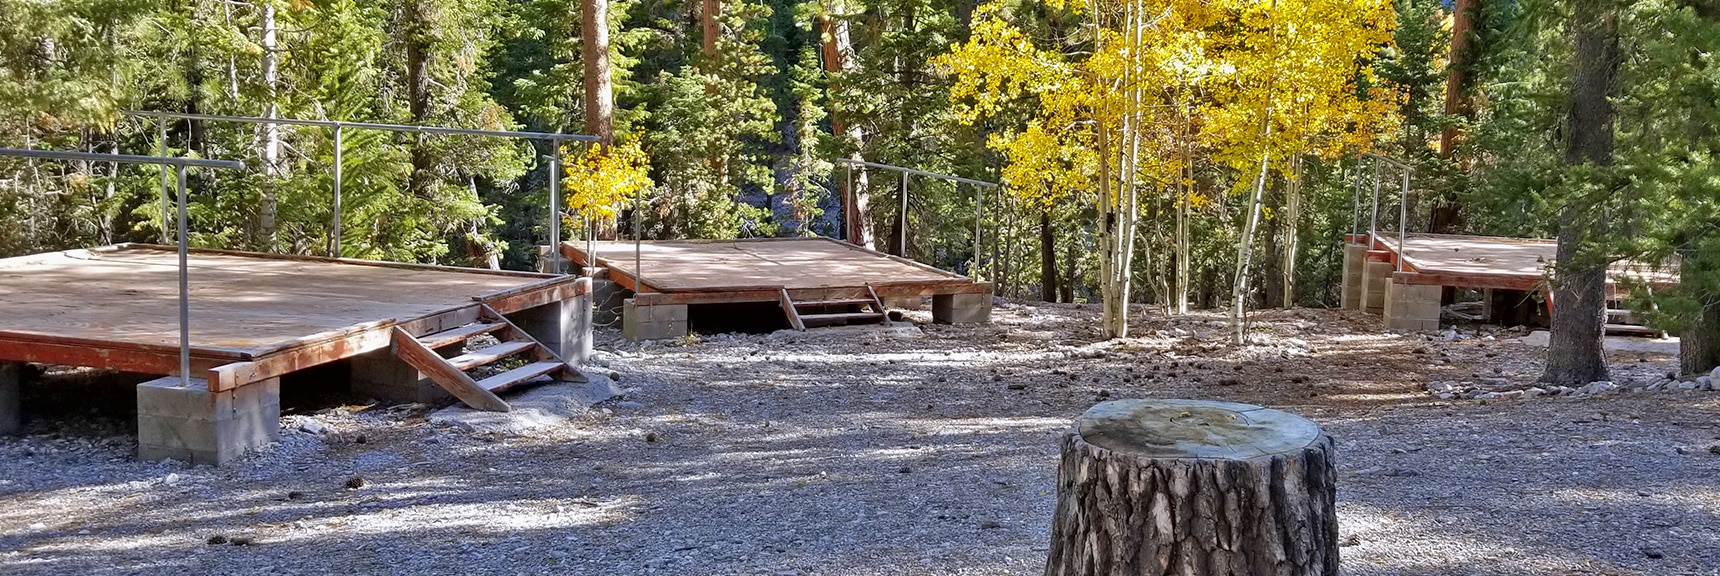 Meeting Platforms at Camp Foxtail Girl Scouts Camp   Foxtail Canyon   Foxtail Girl Scouts Camp   Mt Charleston Wilderness   Spring Mountains, Nevada